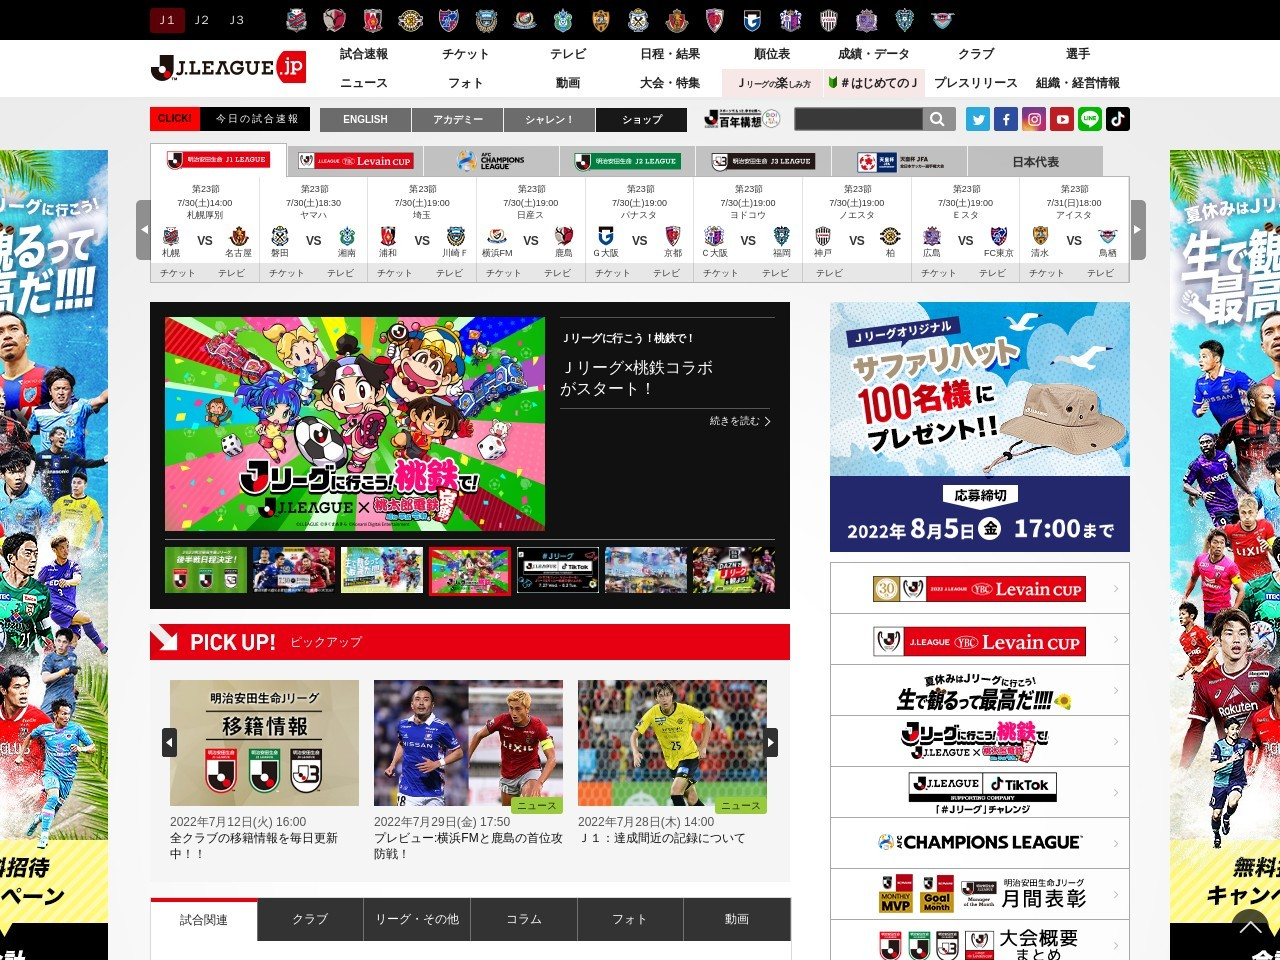 http://www.jleague.jp/match/j3?month=4